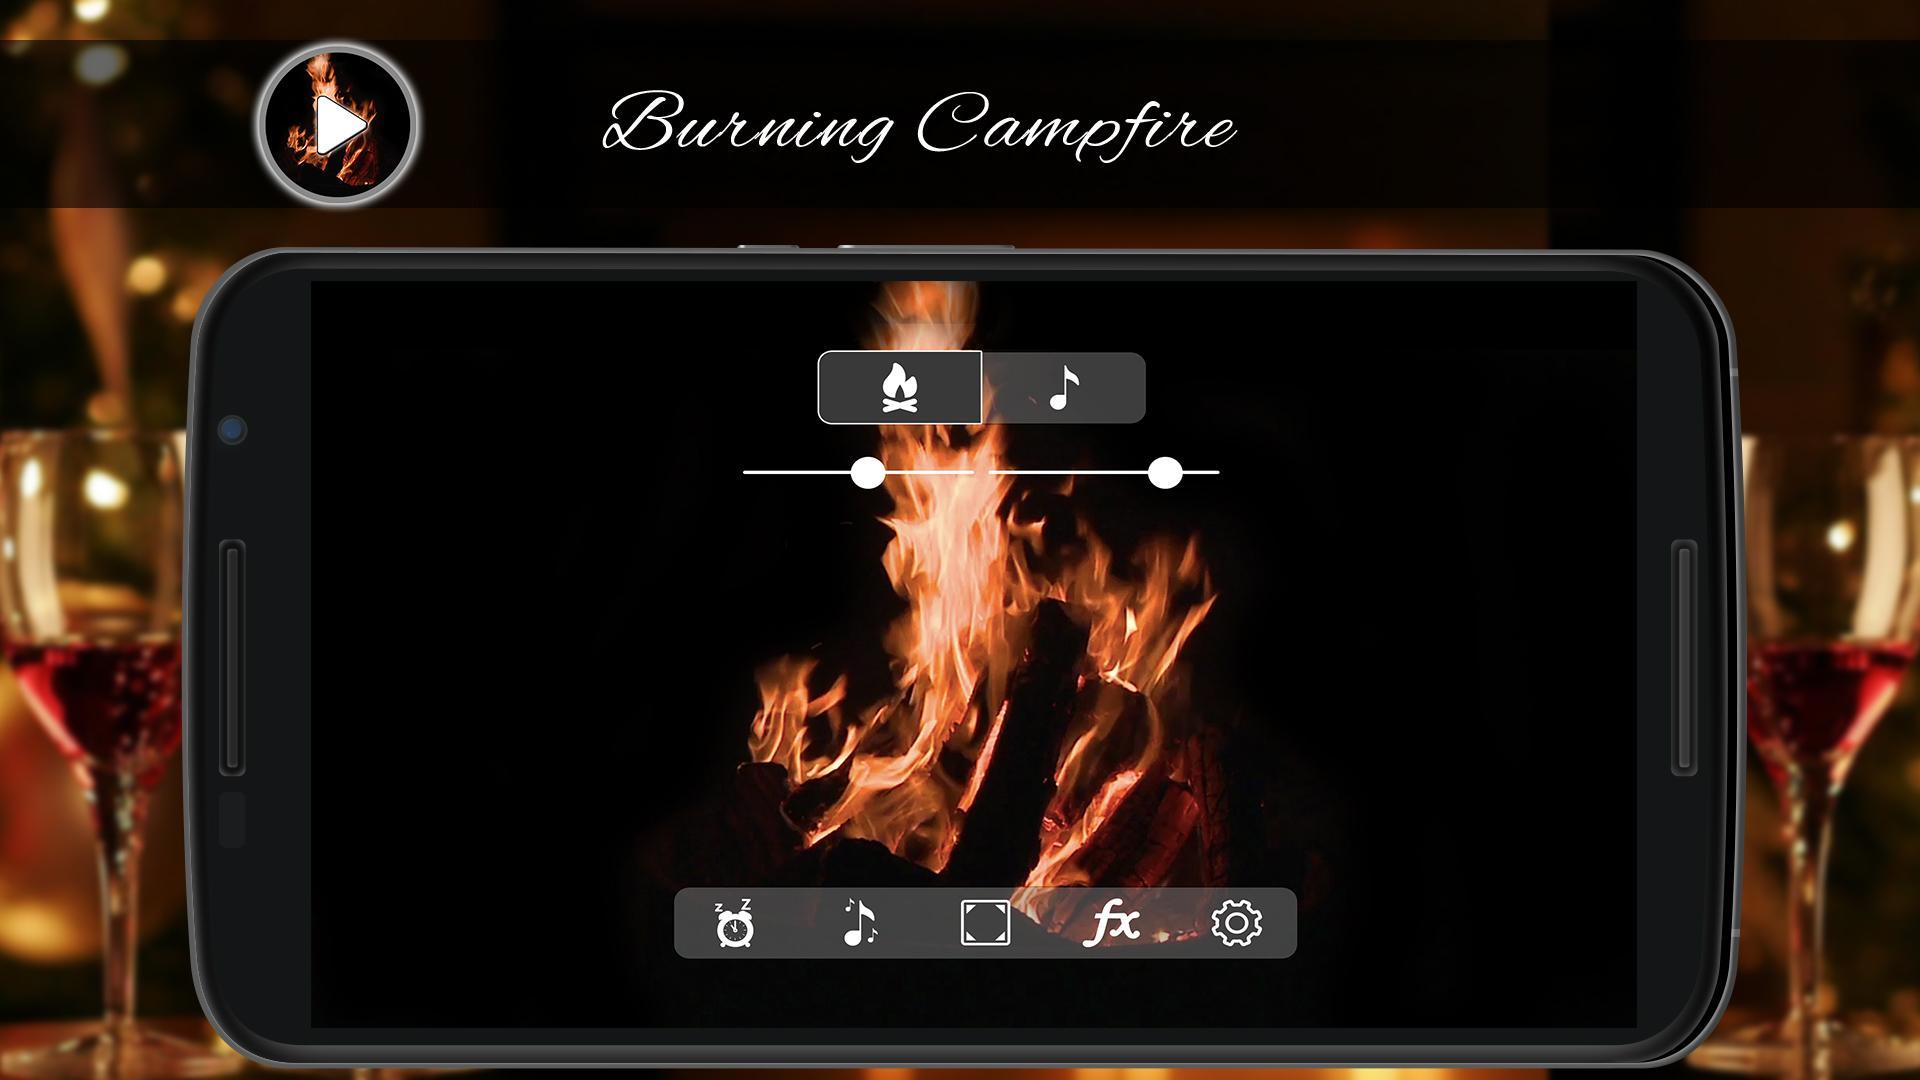 Burning Campfire Crackling for Android - APK Download